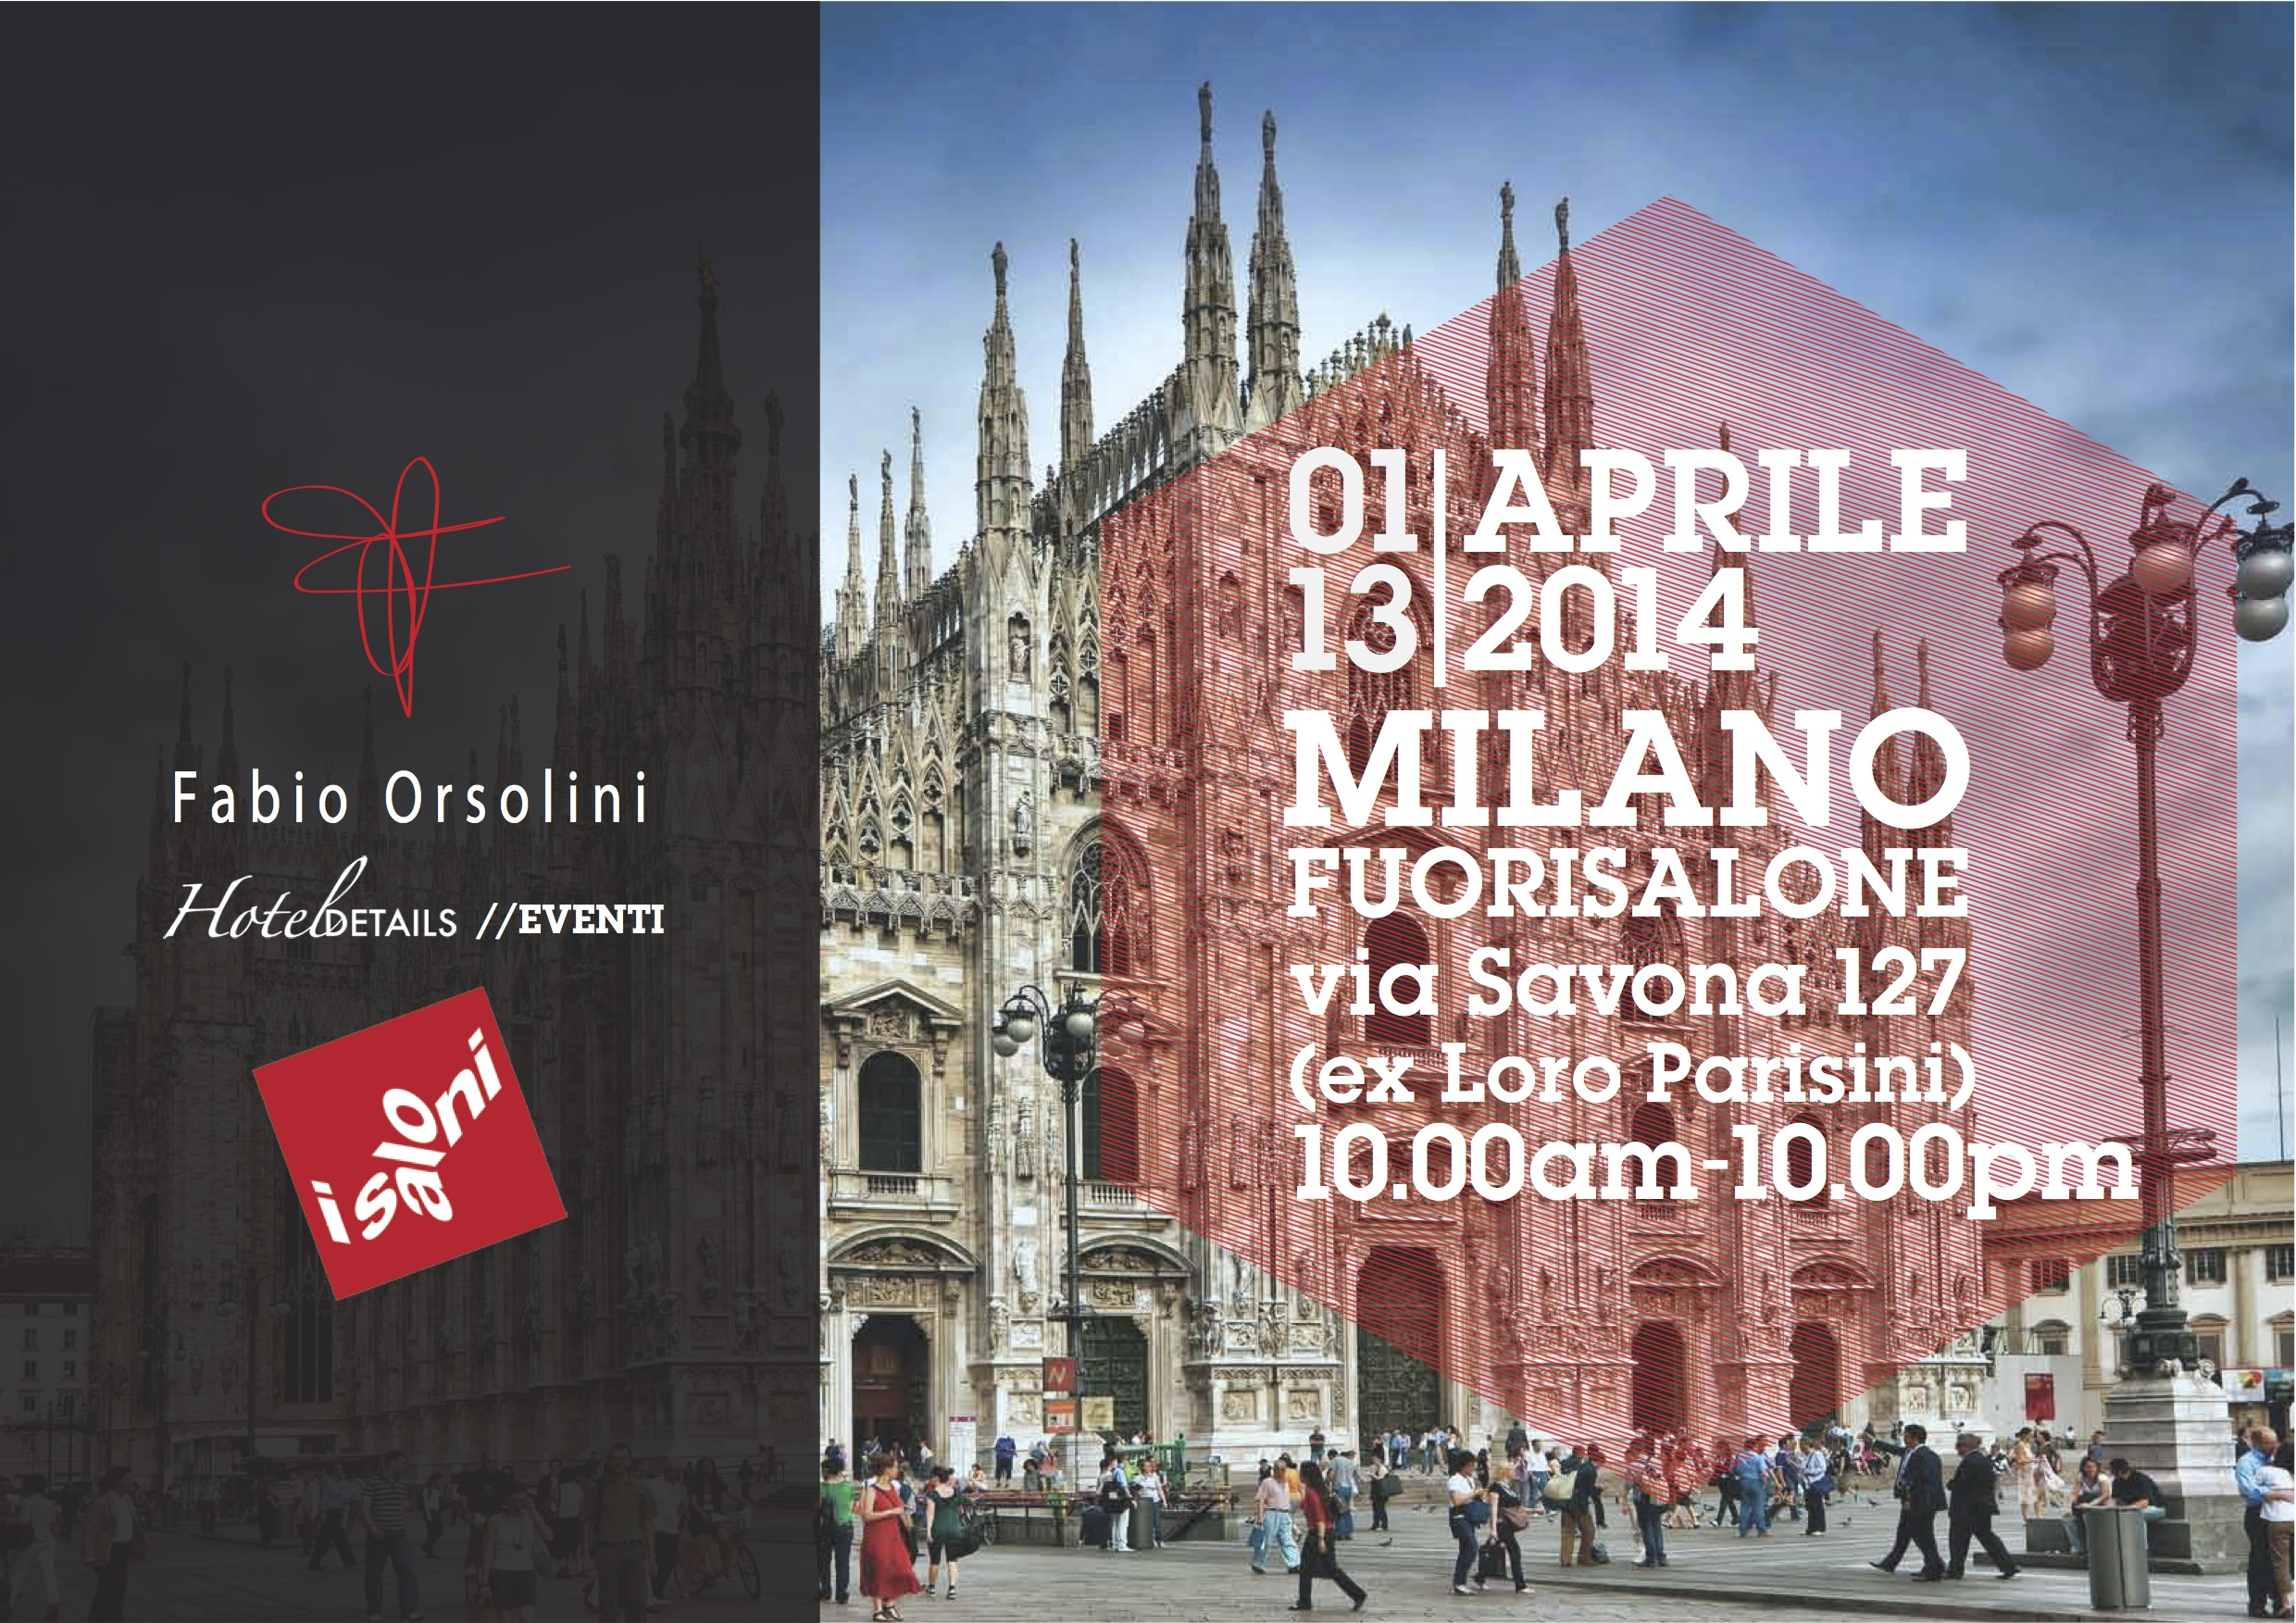 Fabio Orsolini at  Salone del Mobile with Hotel Details